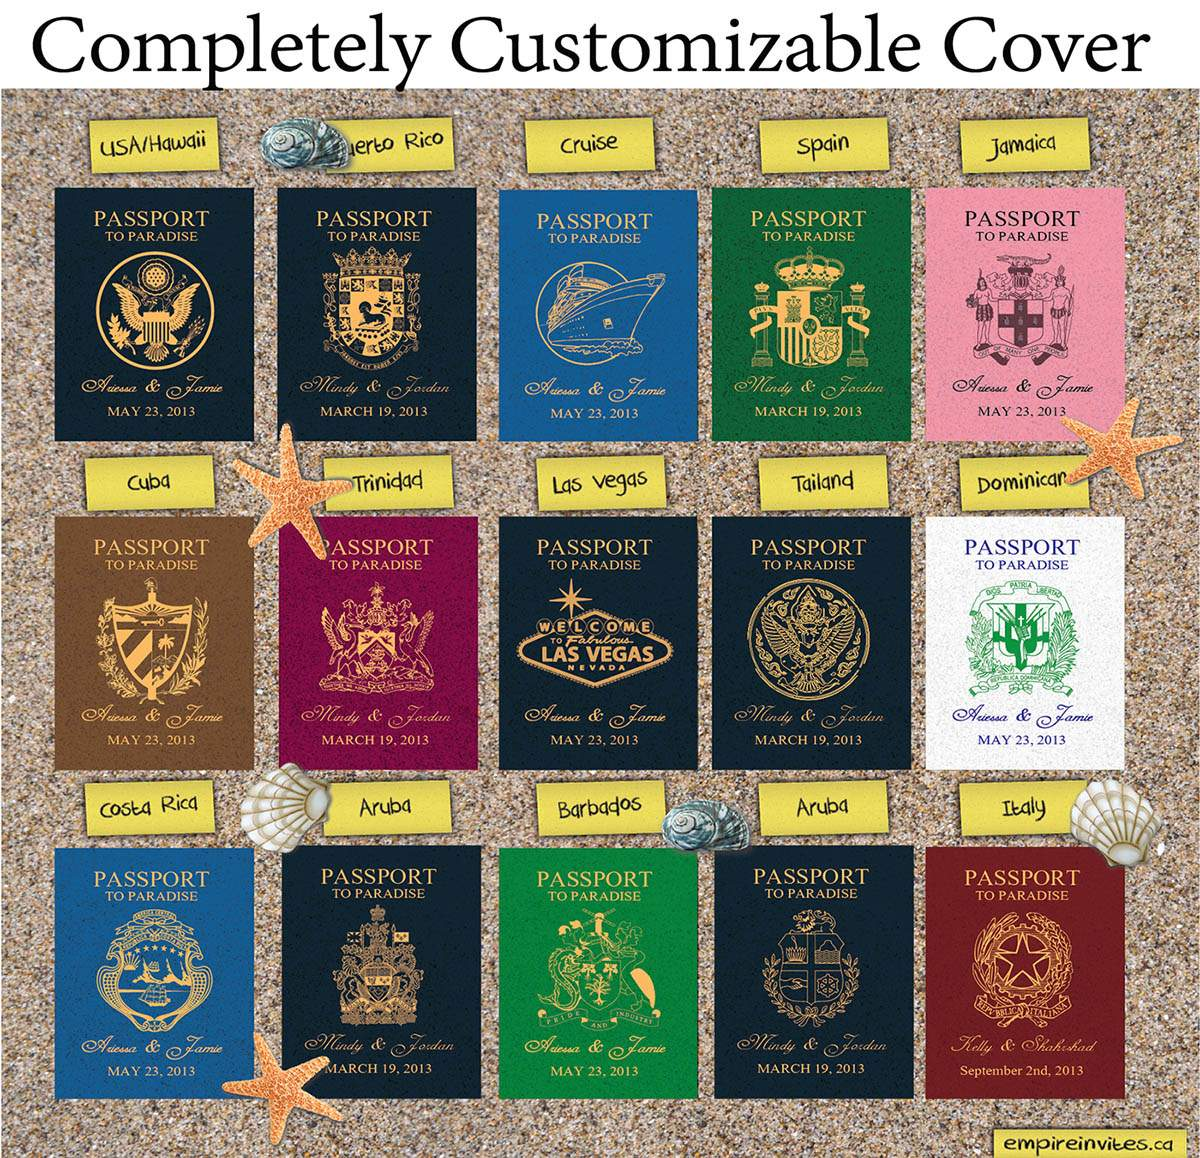 Custom Passport Wedding Invitations Canada Empire Invites